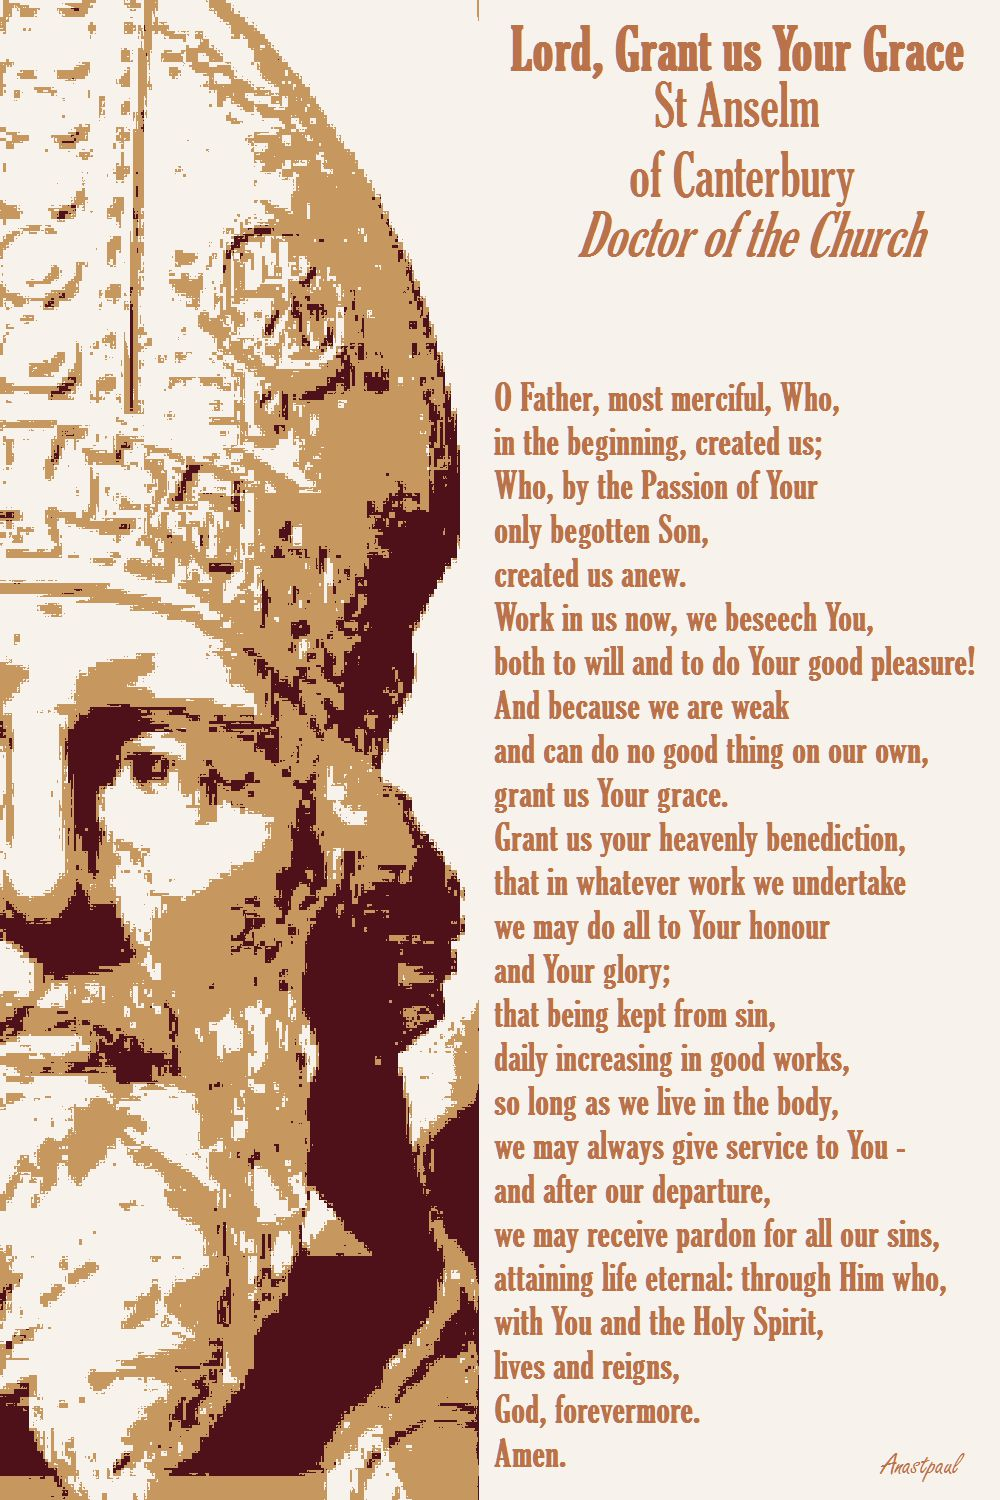 LORD GRANT US YOUR GRACE - S ANSELM